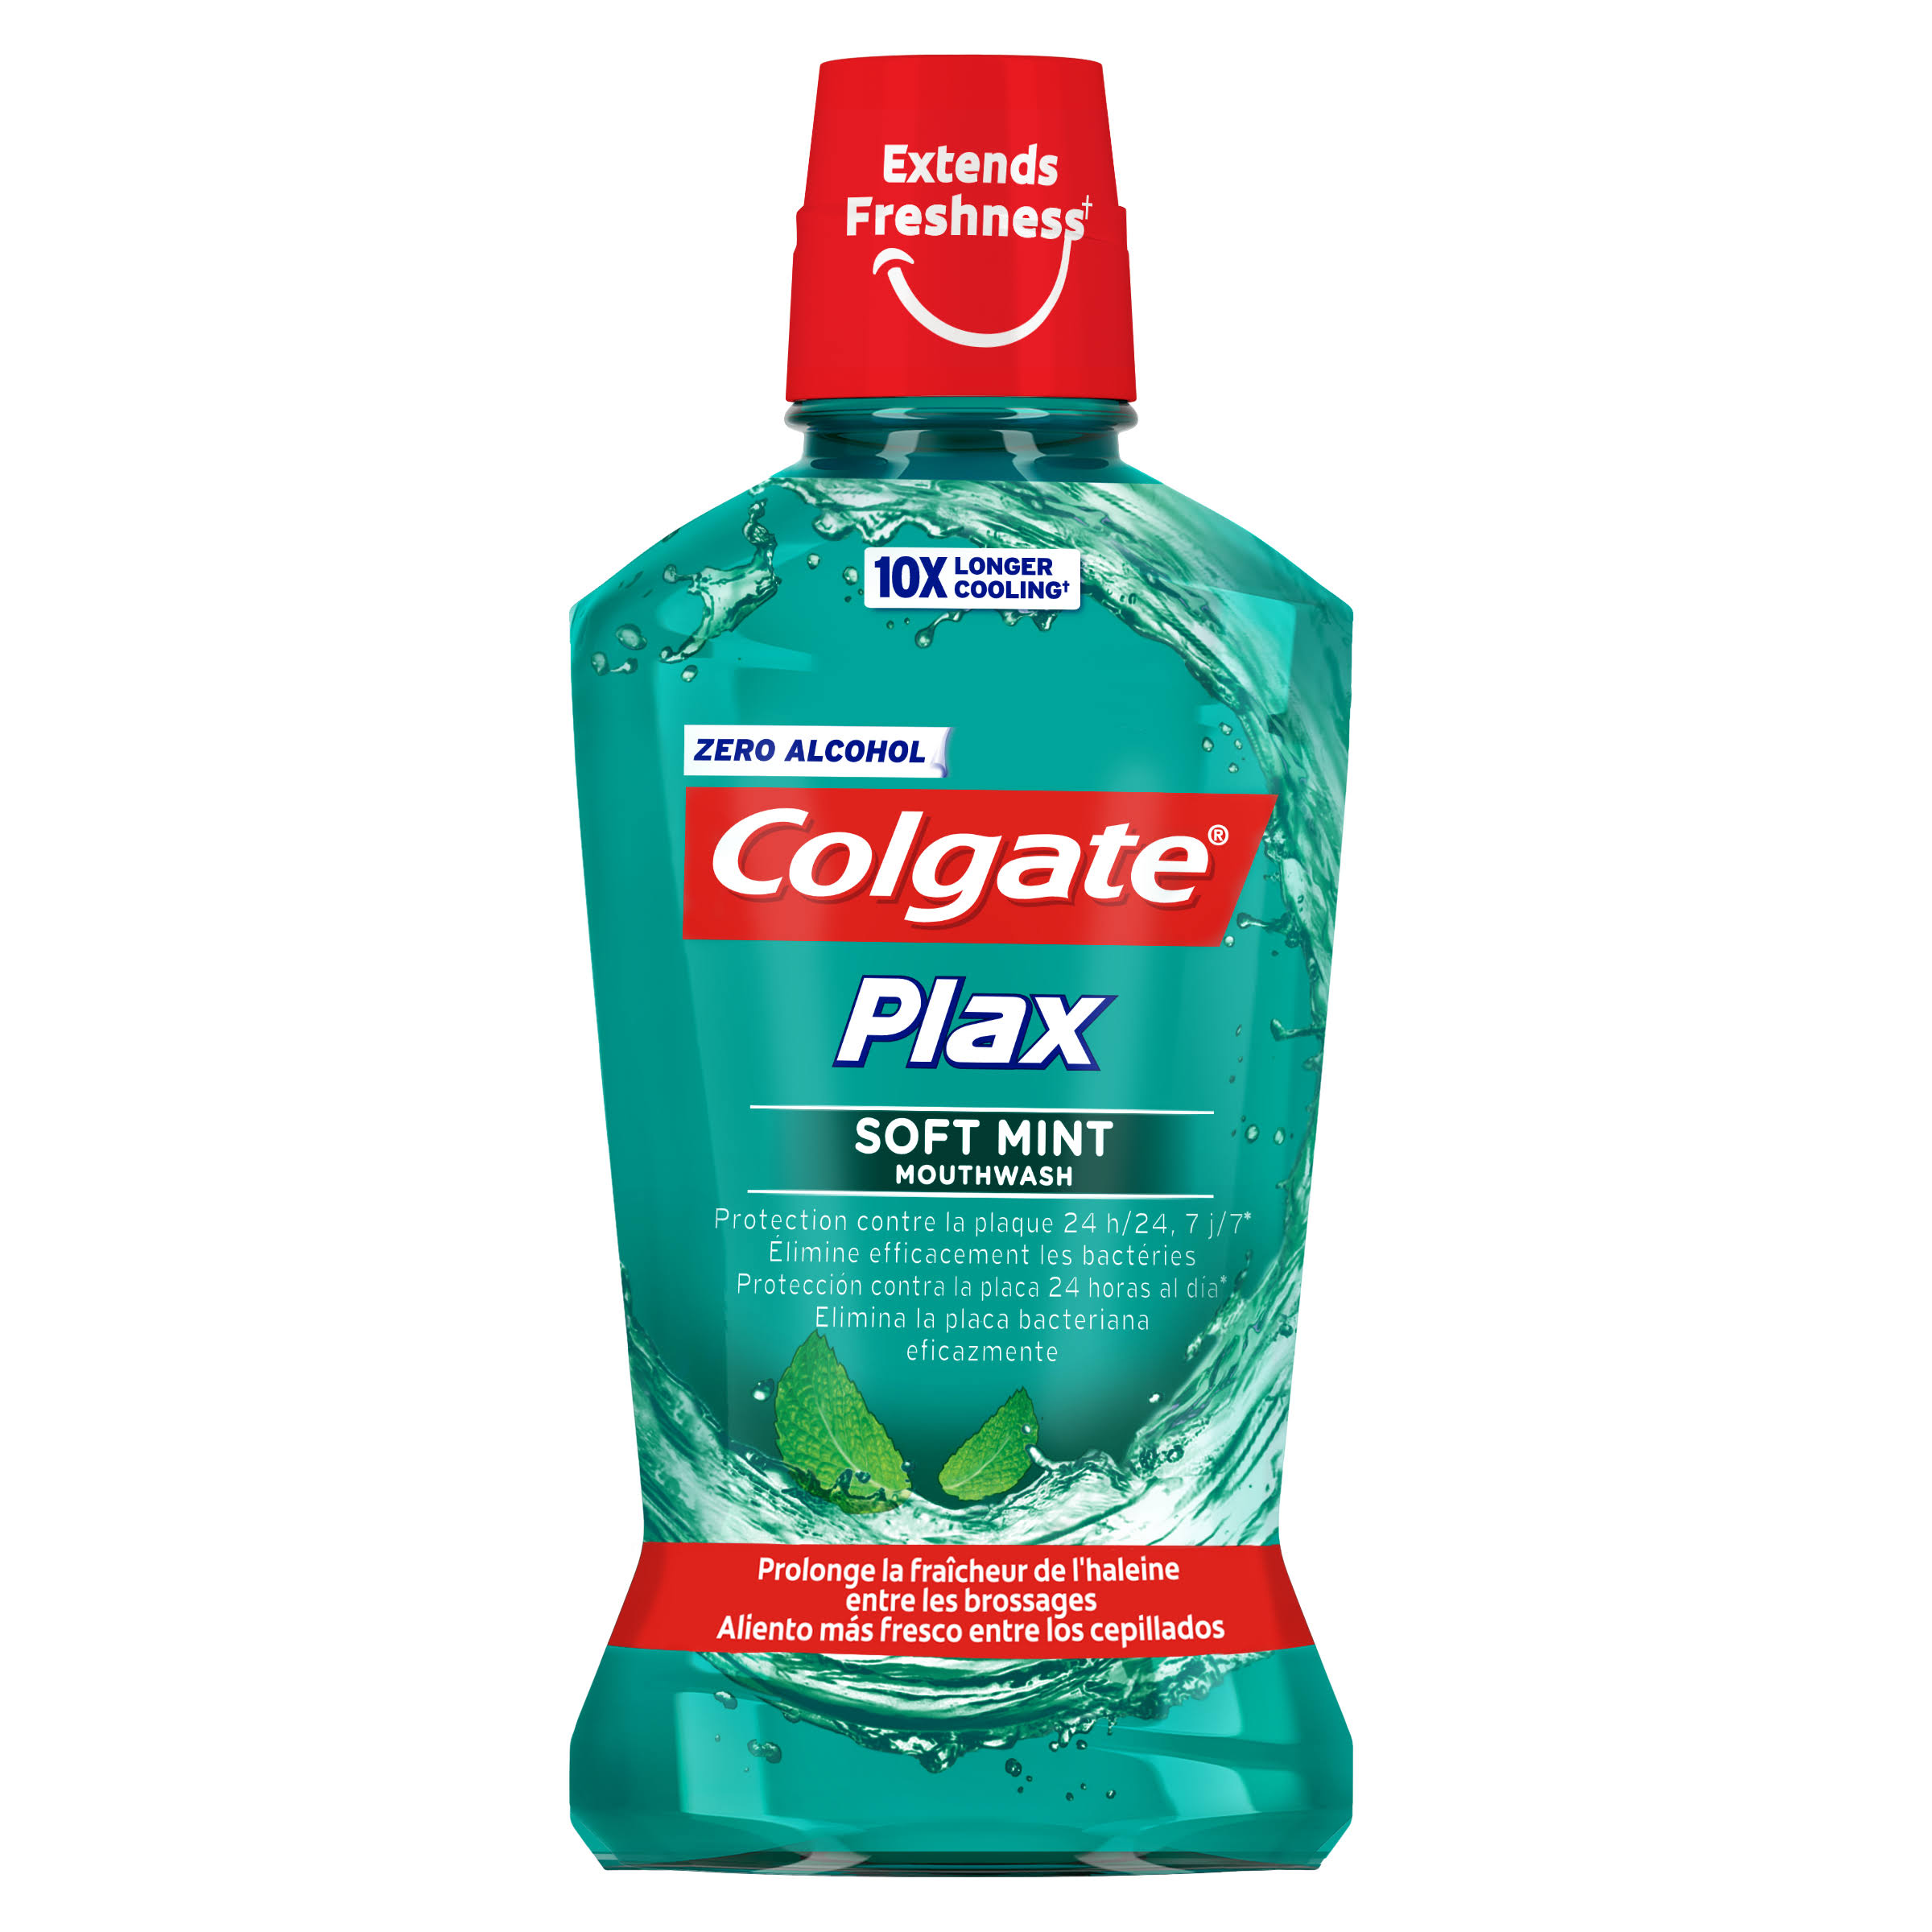 Colgate Plax Mouthwash 250ml